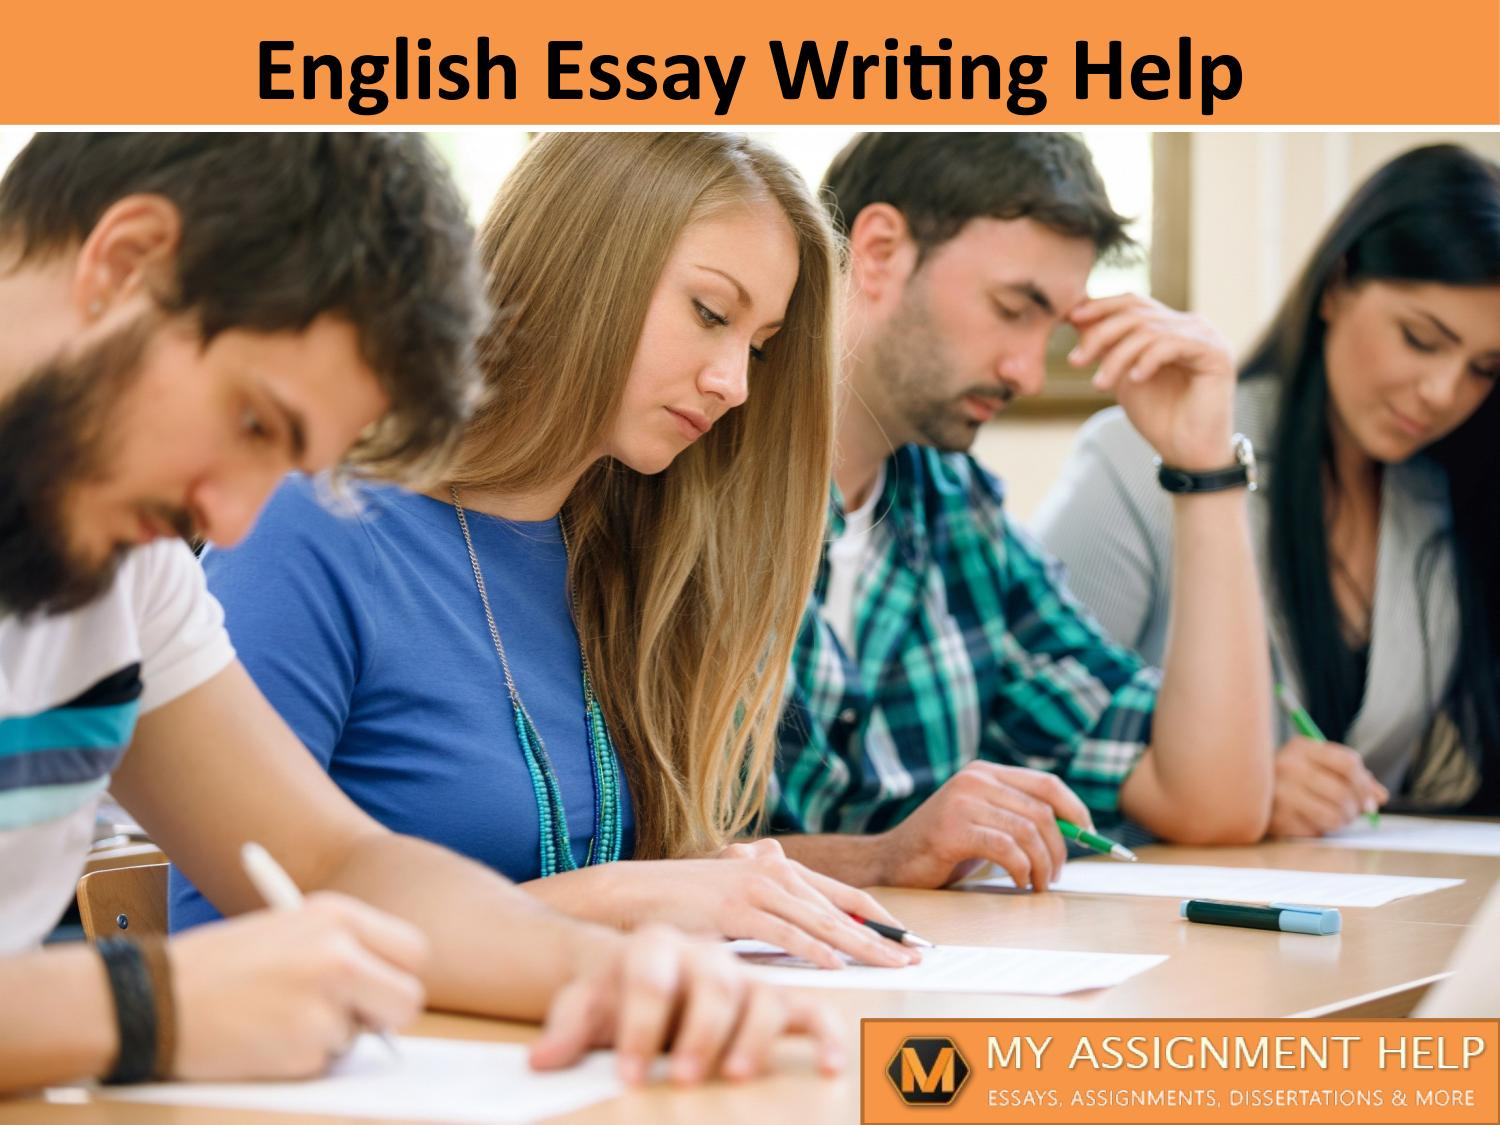 Good English Essays Examples  Life After High School Essay also Essay On English Teacher English Essay Writing Help By Myassignmenthelpcom  Issuu What Is The Thesis Statement In The Essay